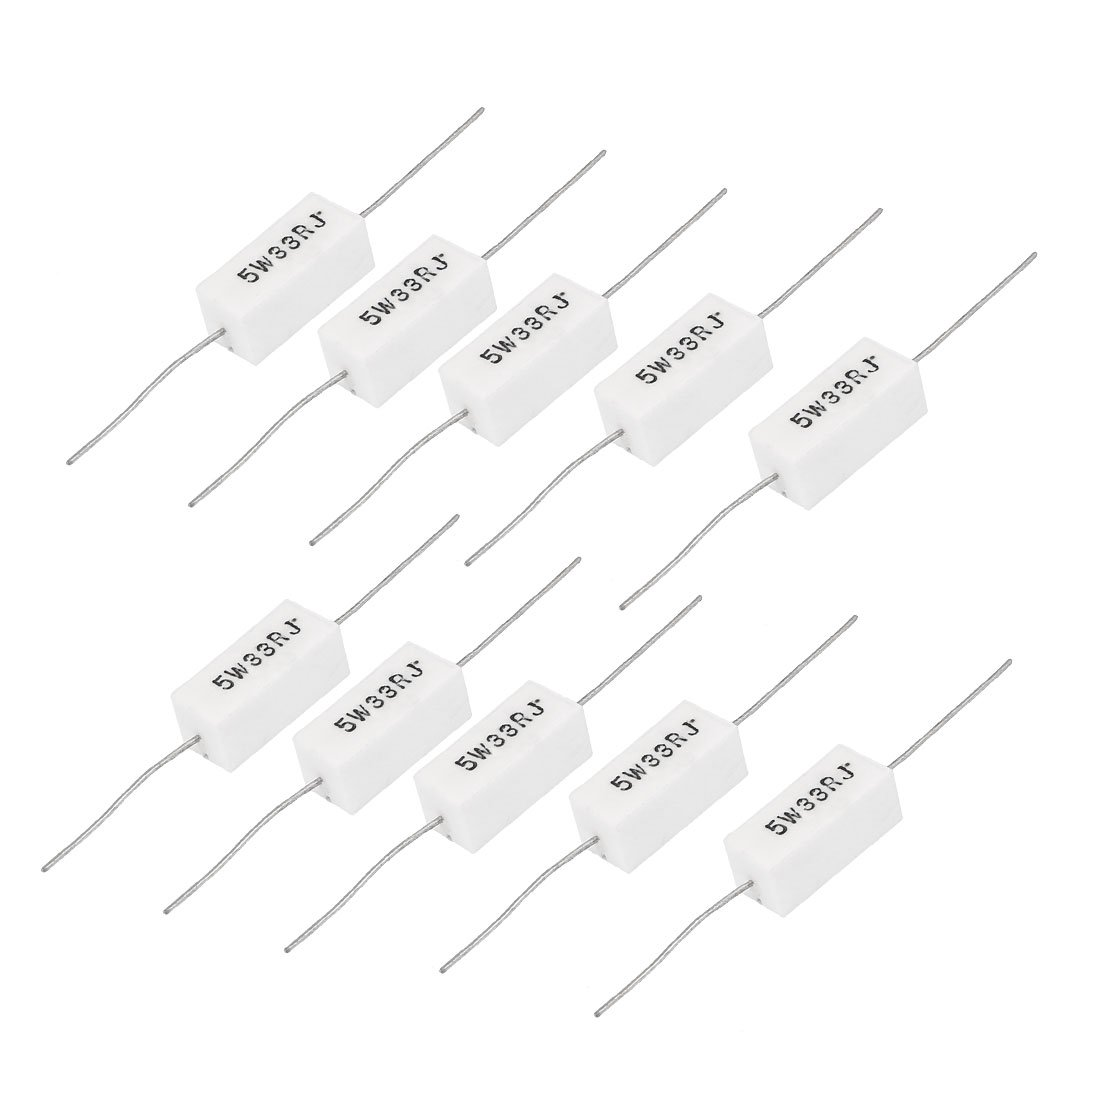 sourcing map 5W 0.25 Ohm Power Resistor Ceramic Cement Resistor Axial Lead 10 Pcs White